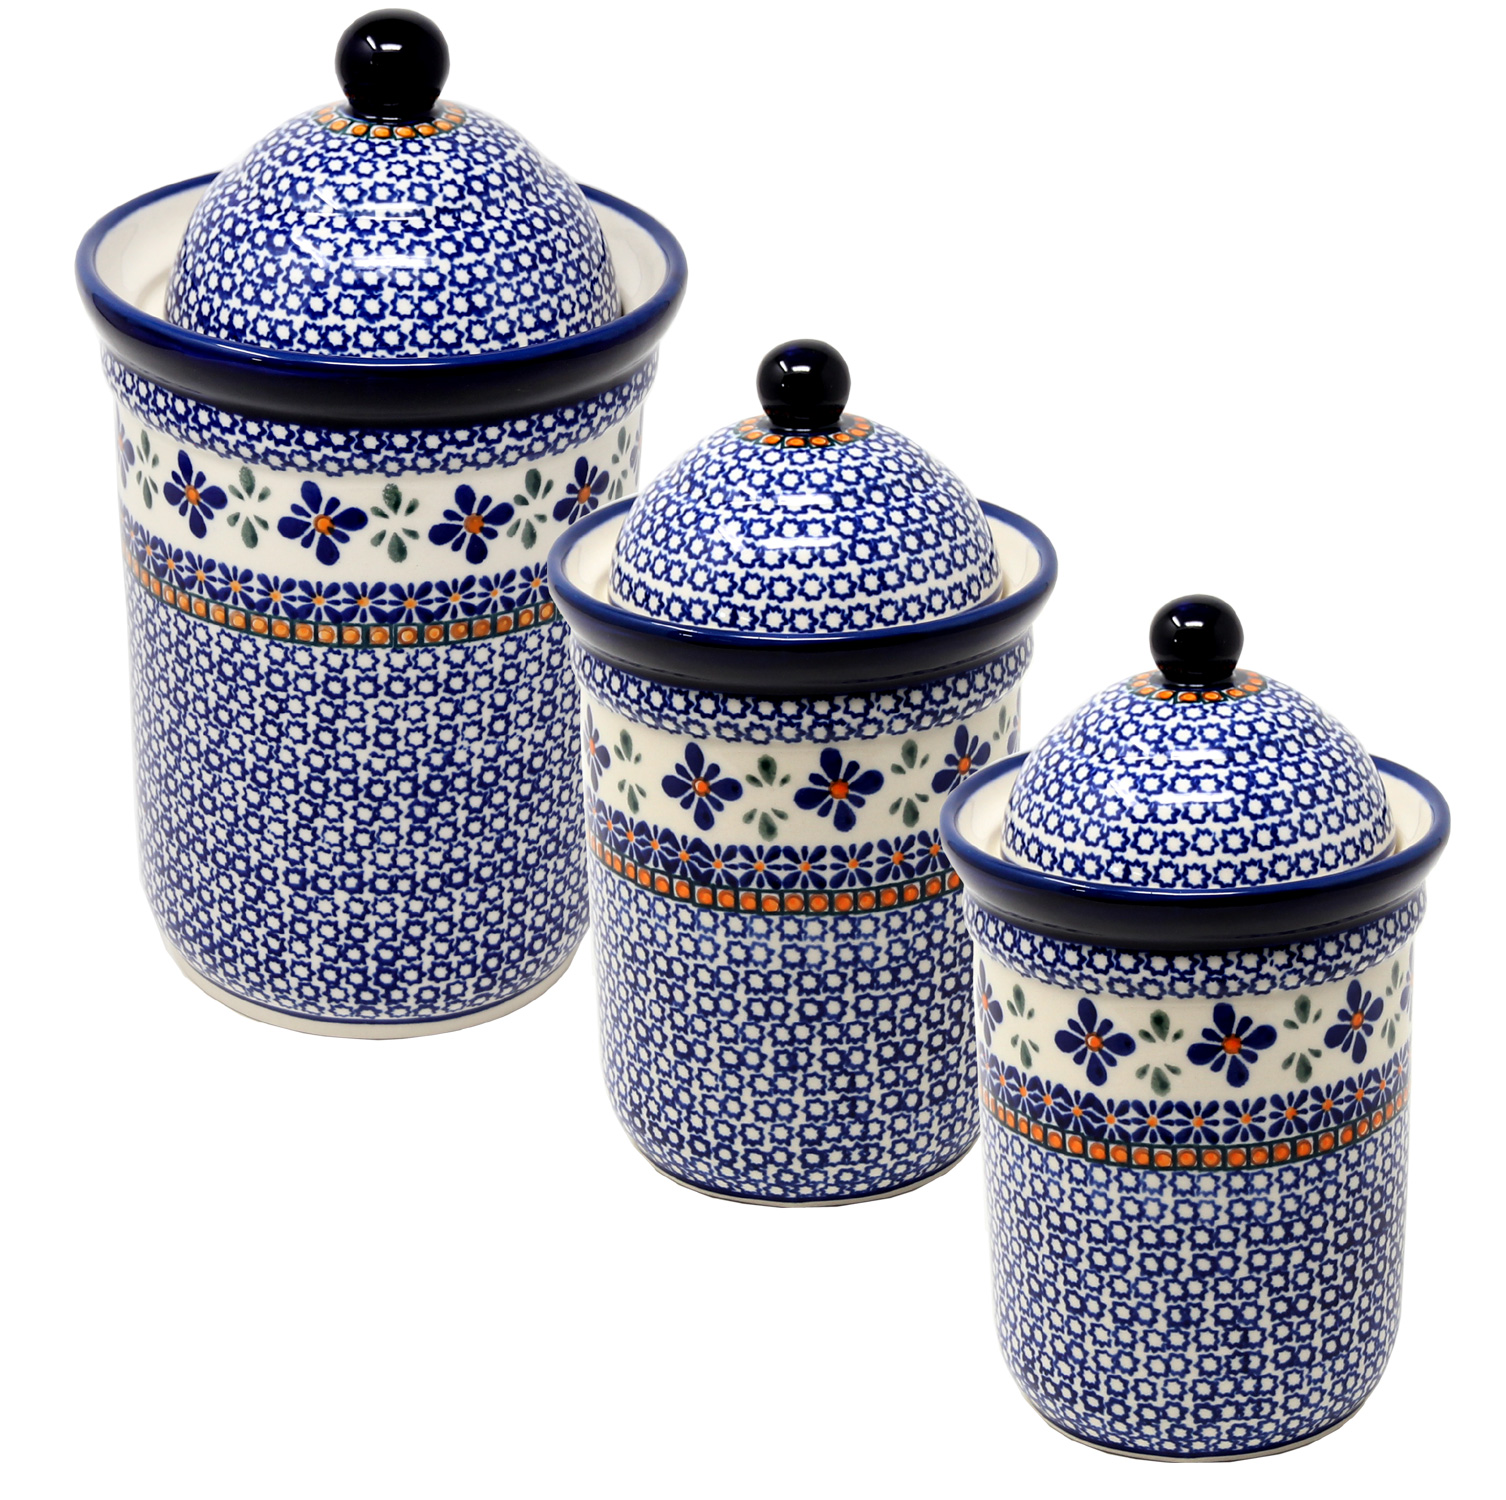 Canister Set 3 Piece Polish Pottery in Mosaic Flower Design